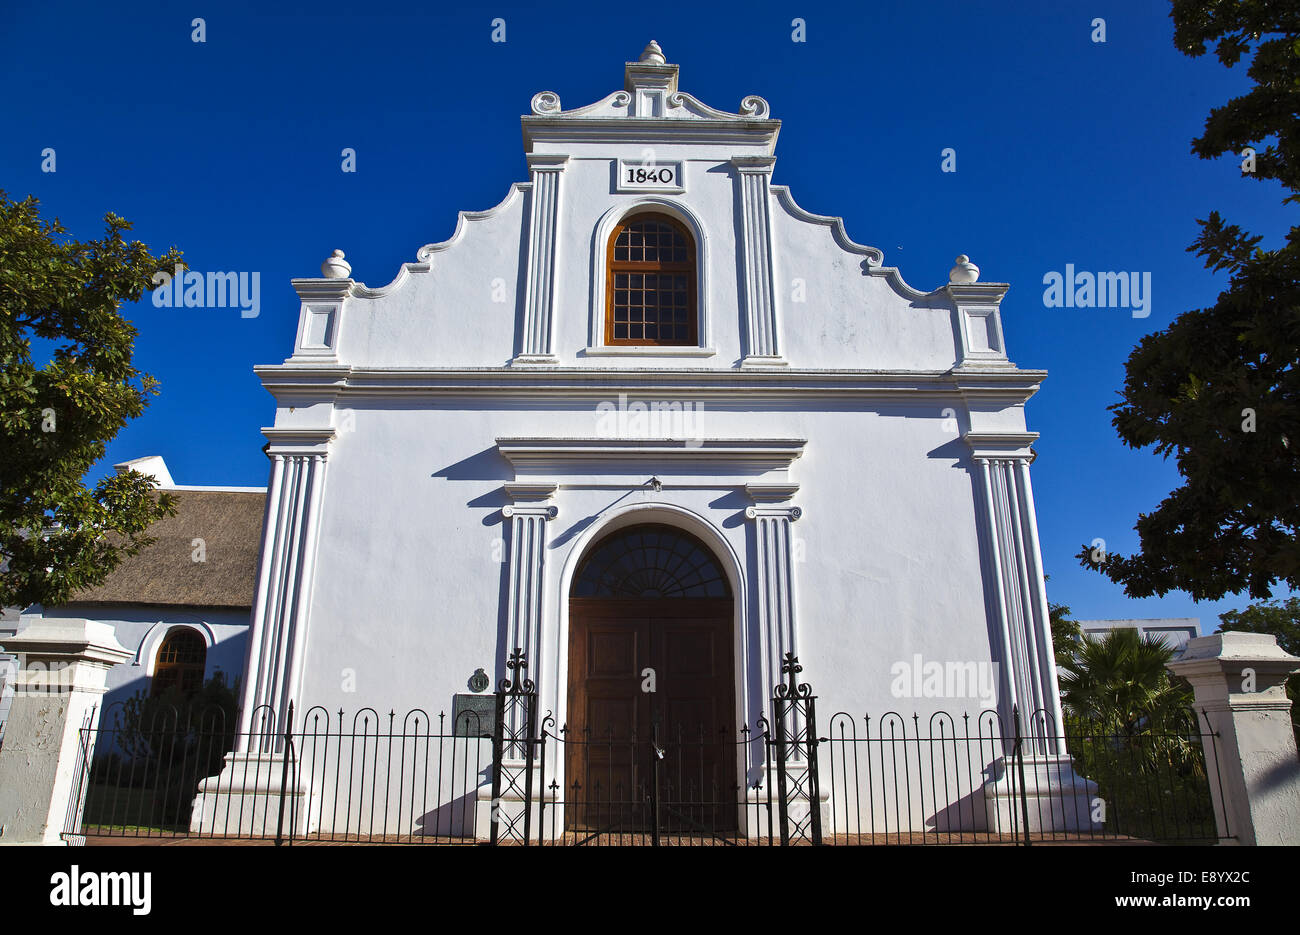 South Africa, Cape town, Stellenbosh, the Rhenish church - Stock Image